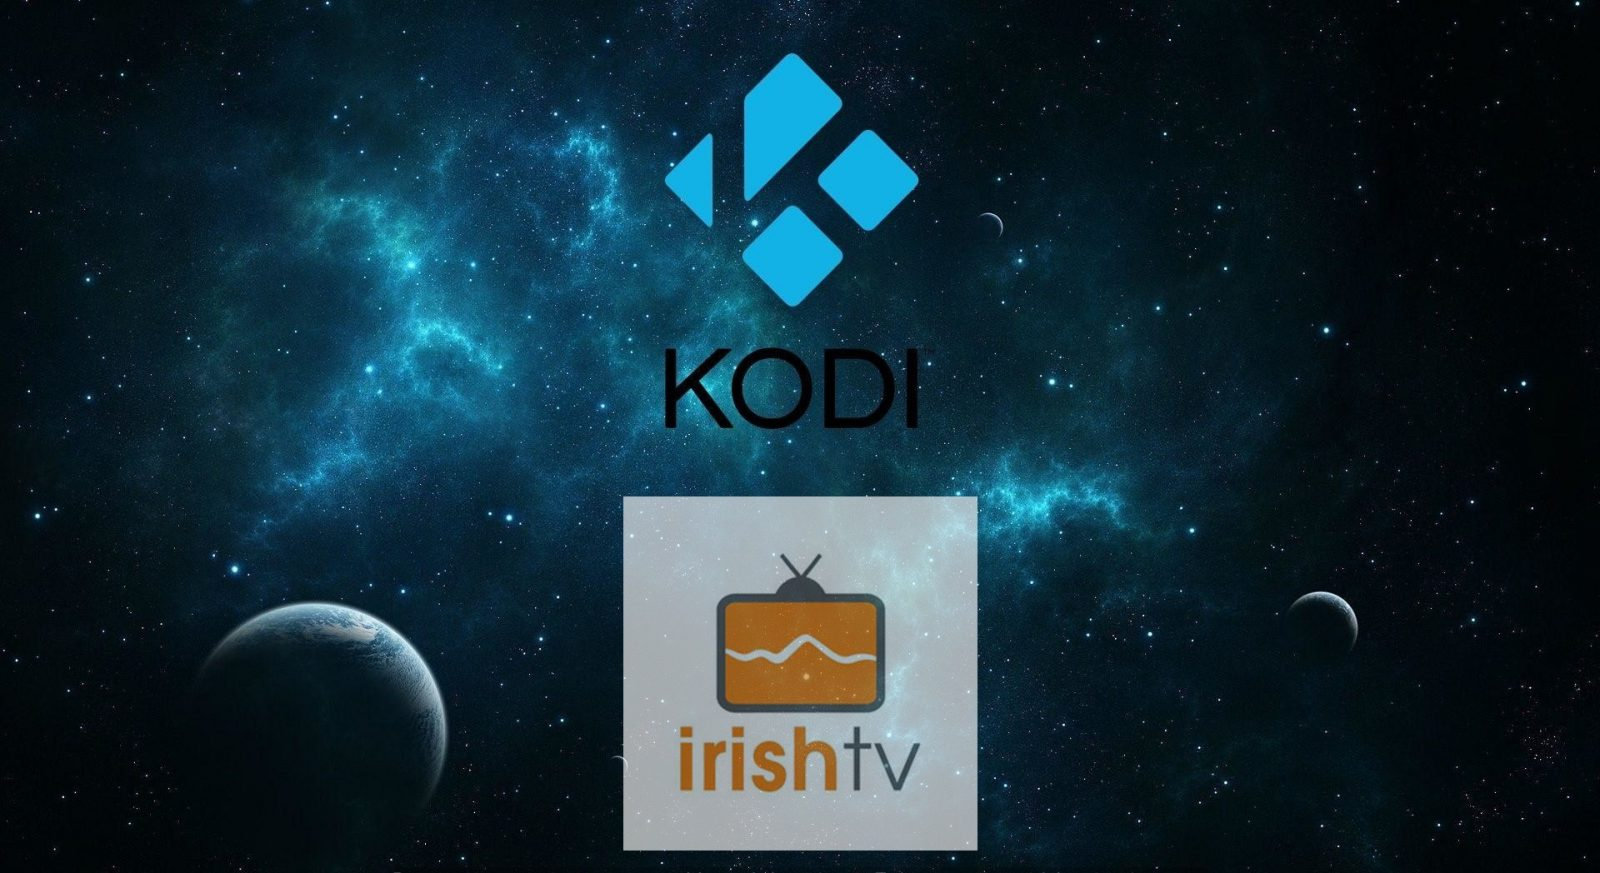 How to Install Irish TV Kodi Addon? [Updated 2019] - Tech